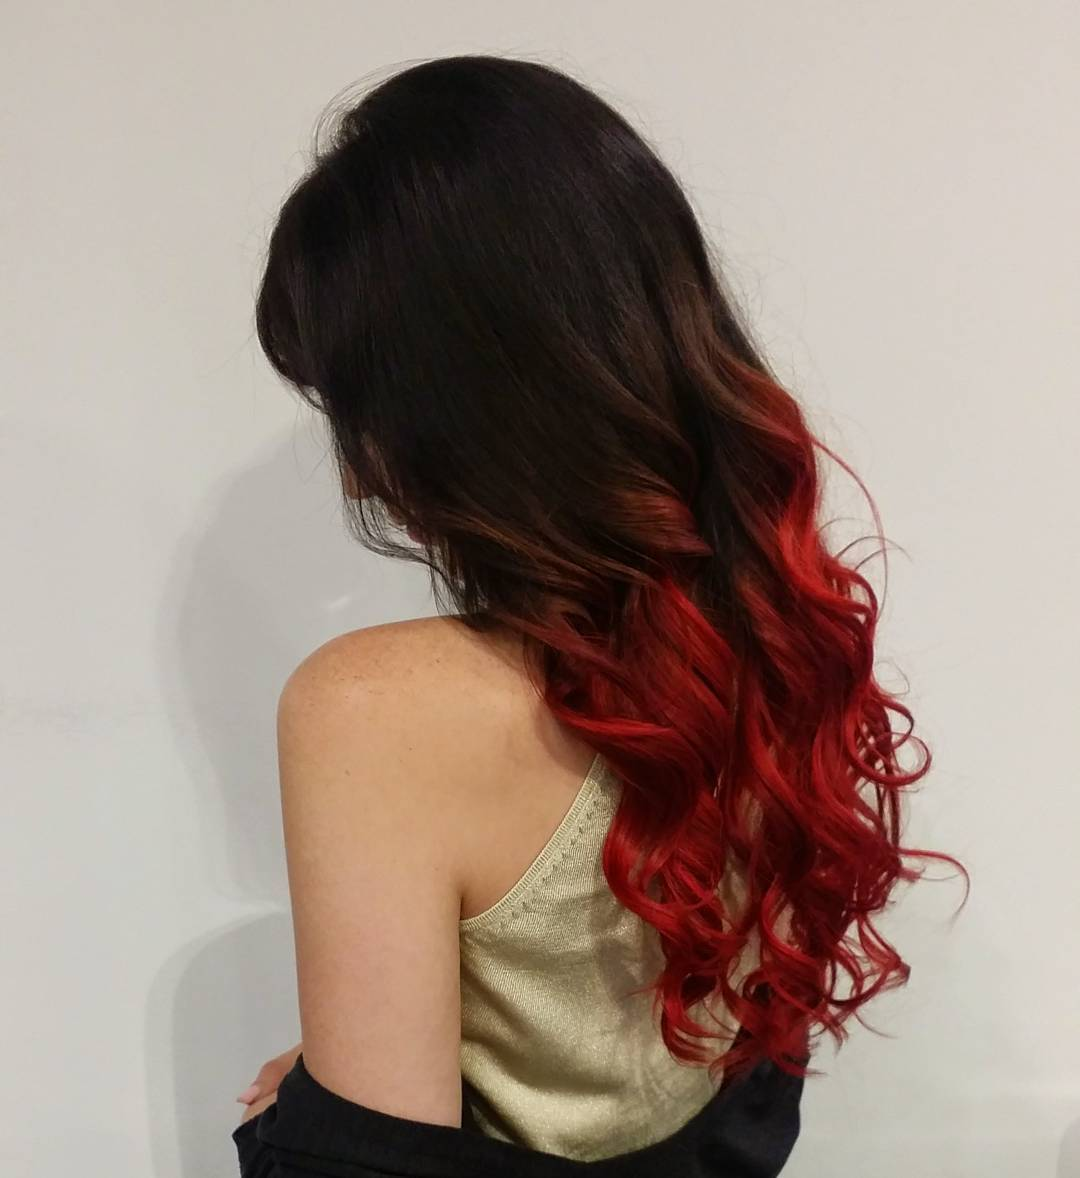 dress - Ombre to red Black hair video